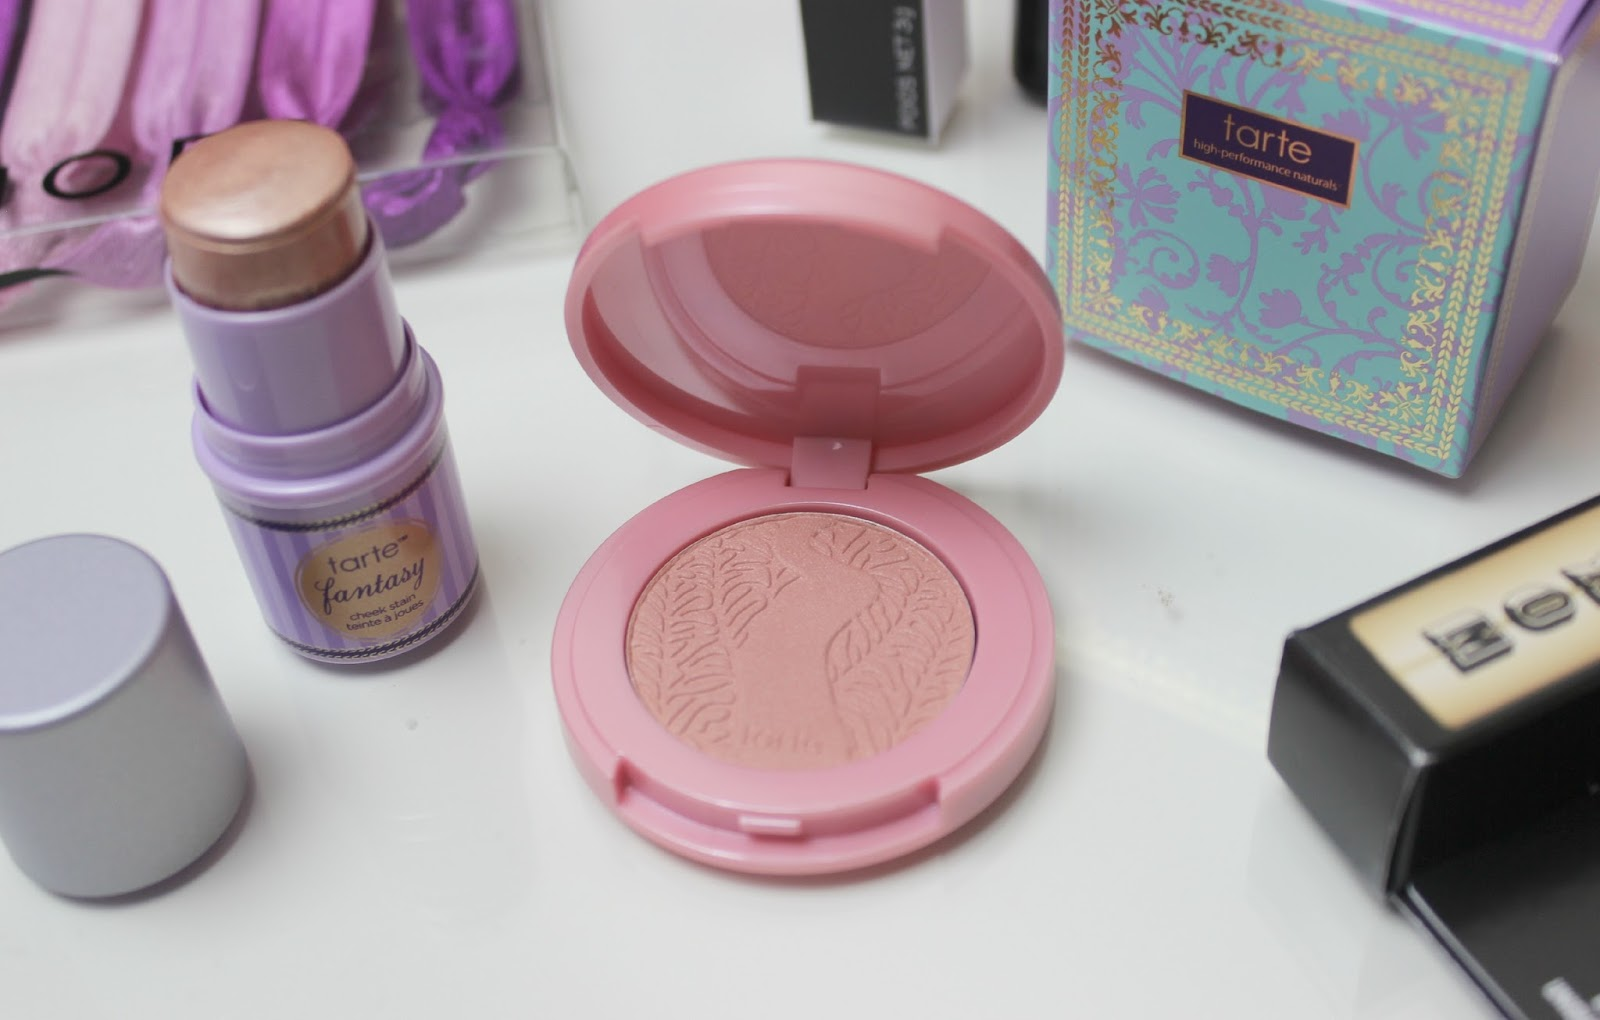 A picture of the Tarte Pigment of Imagination Deluxe Cheek Set